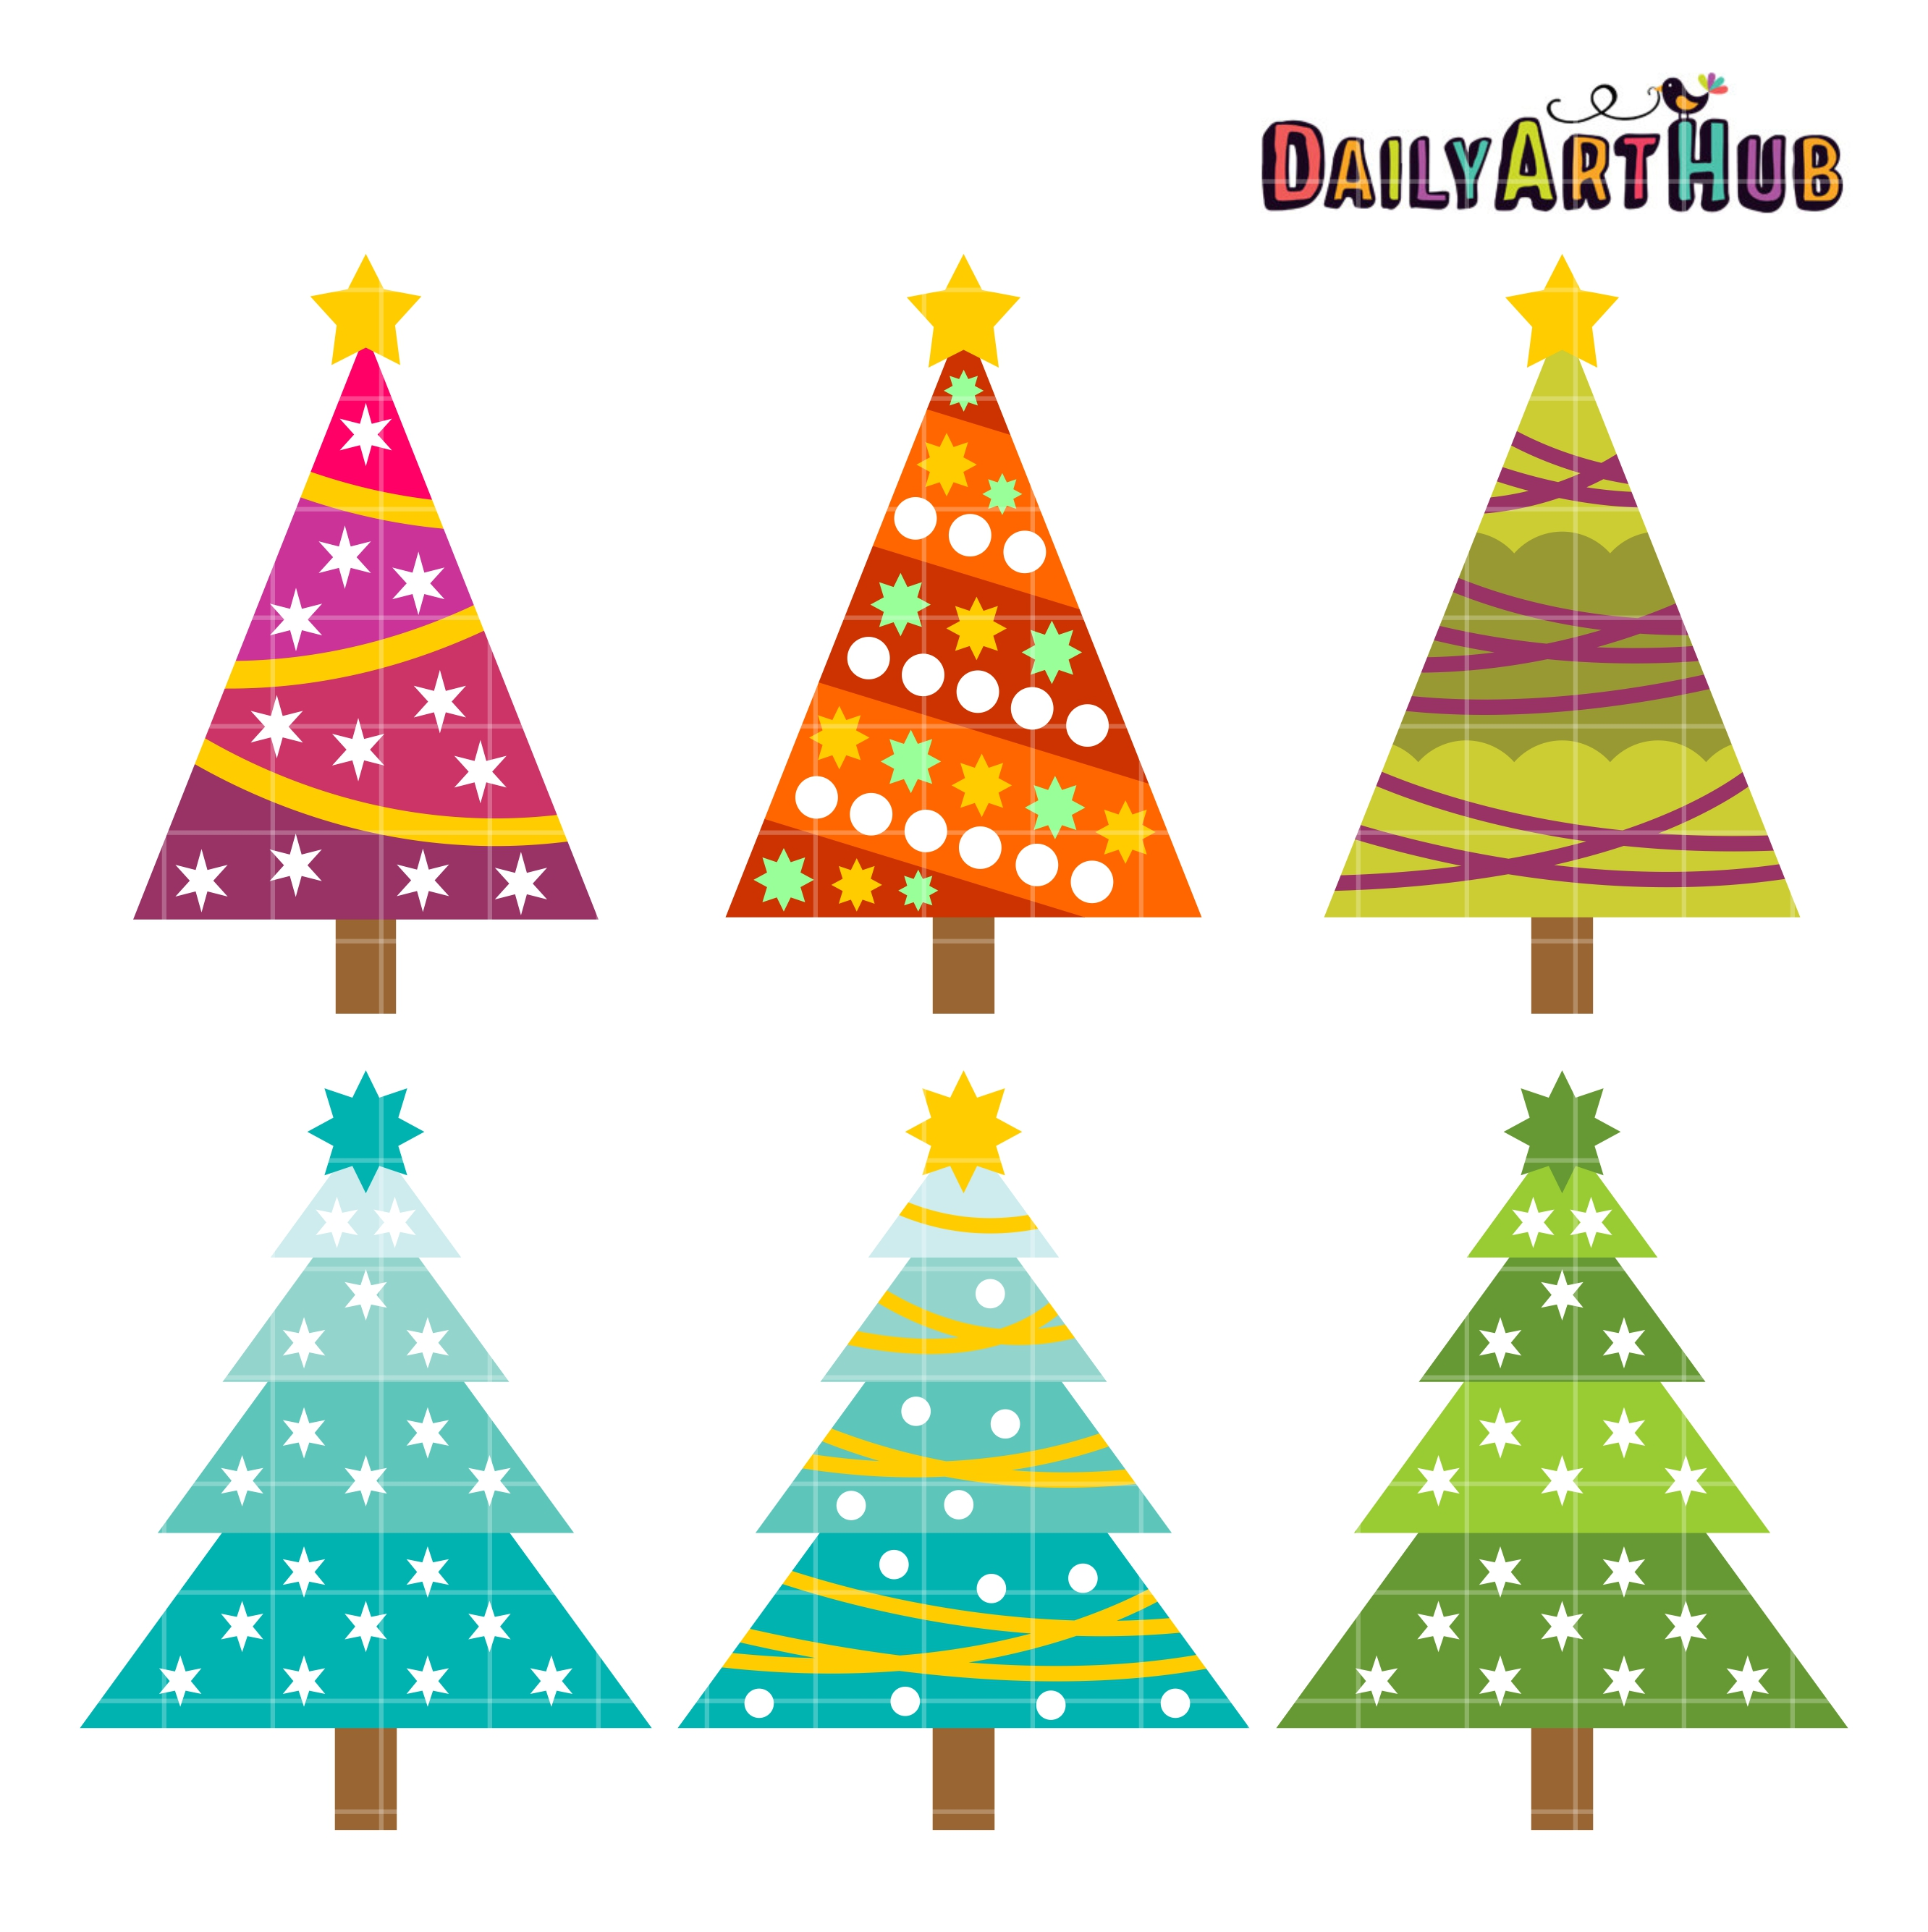 Retro Christmas Trees Clip Art Set Daily Art Hub Free Clip Art Everyday